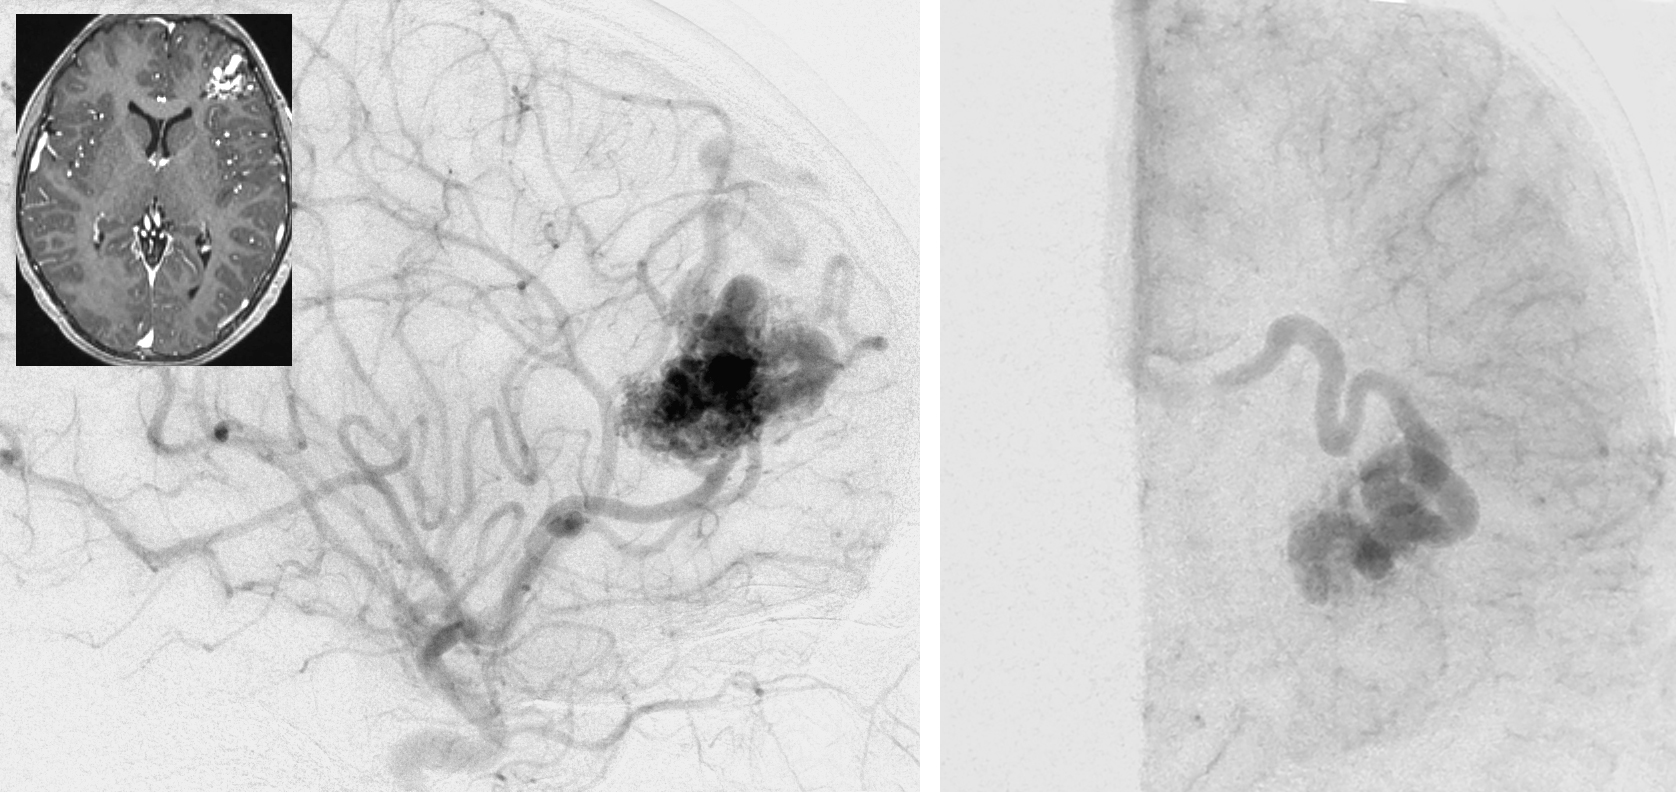 Figure 4: A simple lateral frontal AVM, primarily fed by the MCA branches, is demonstrated (lateral view, ICA angiogram-left image). The primary draining vein joins the superior sagittal sinus (anteroposterior view, ICA angiogram-right image).